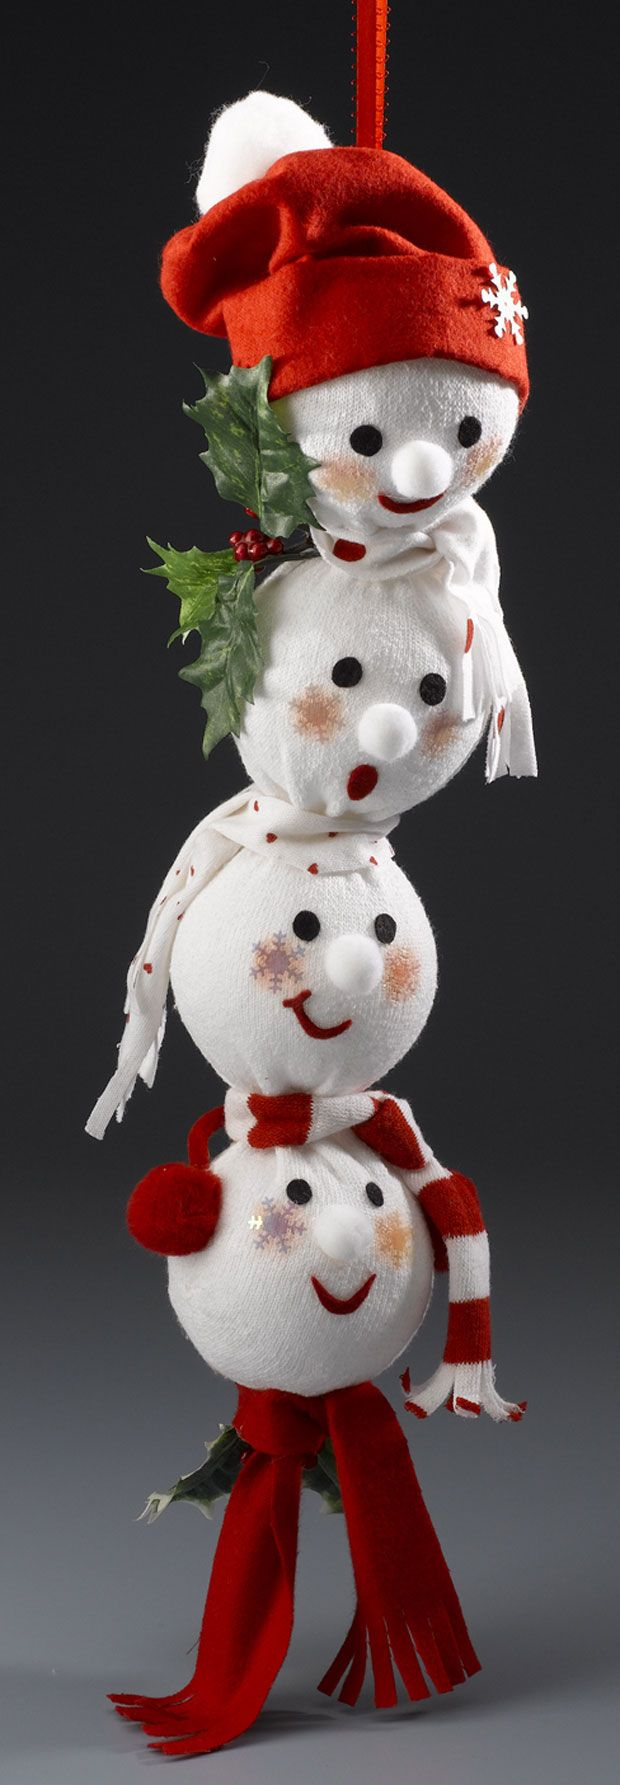 Snowman Swag - Re-purpose socks, stockings & sweaters to make several different snowman crafts! These are adorable and you could make them with your children.   #ModerationNation